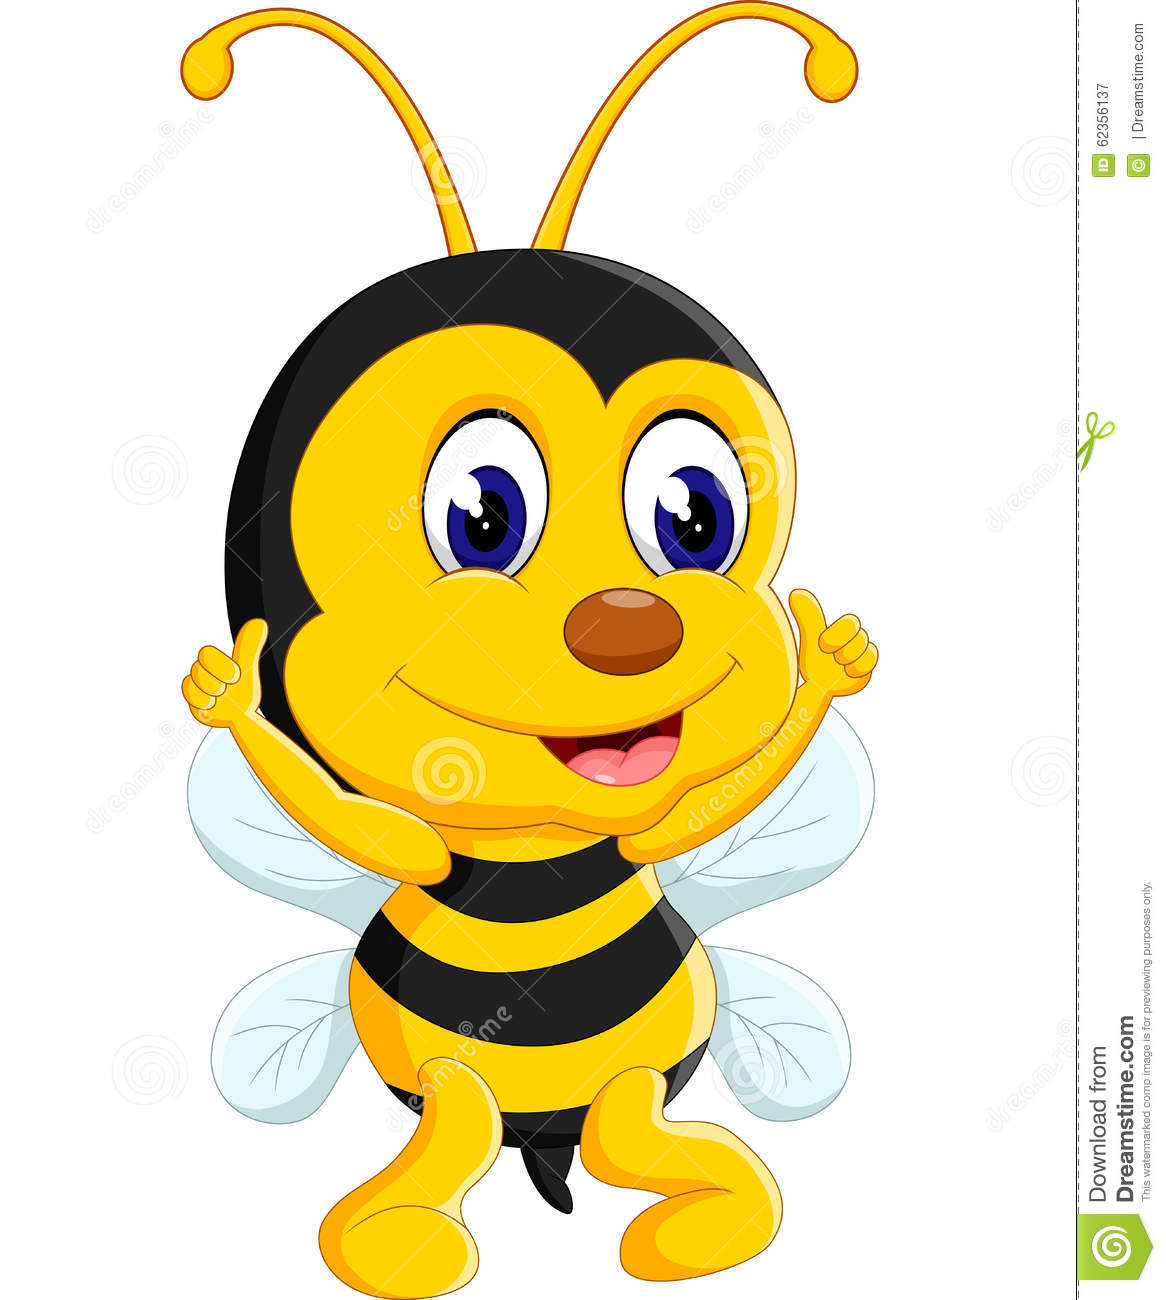 bee online dating Dating bee - want to meet eligible single woman who share your zest for life indeed, for those who've tried and failed to find the right man offline, internet dating can provide.